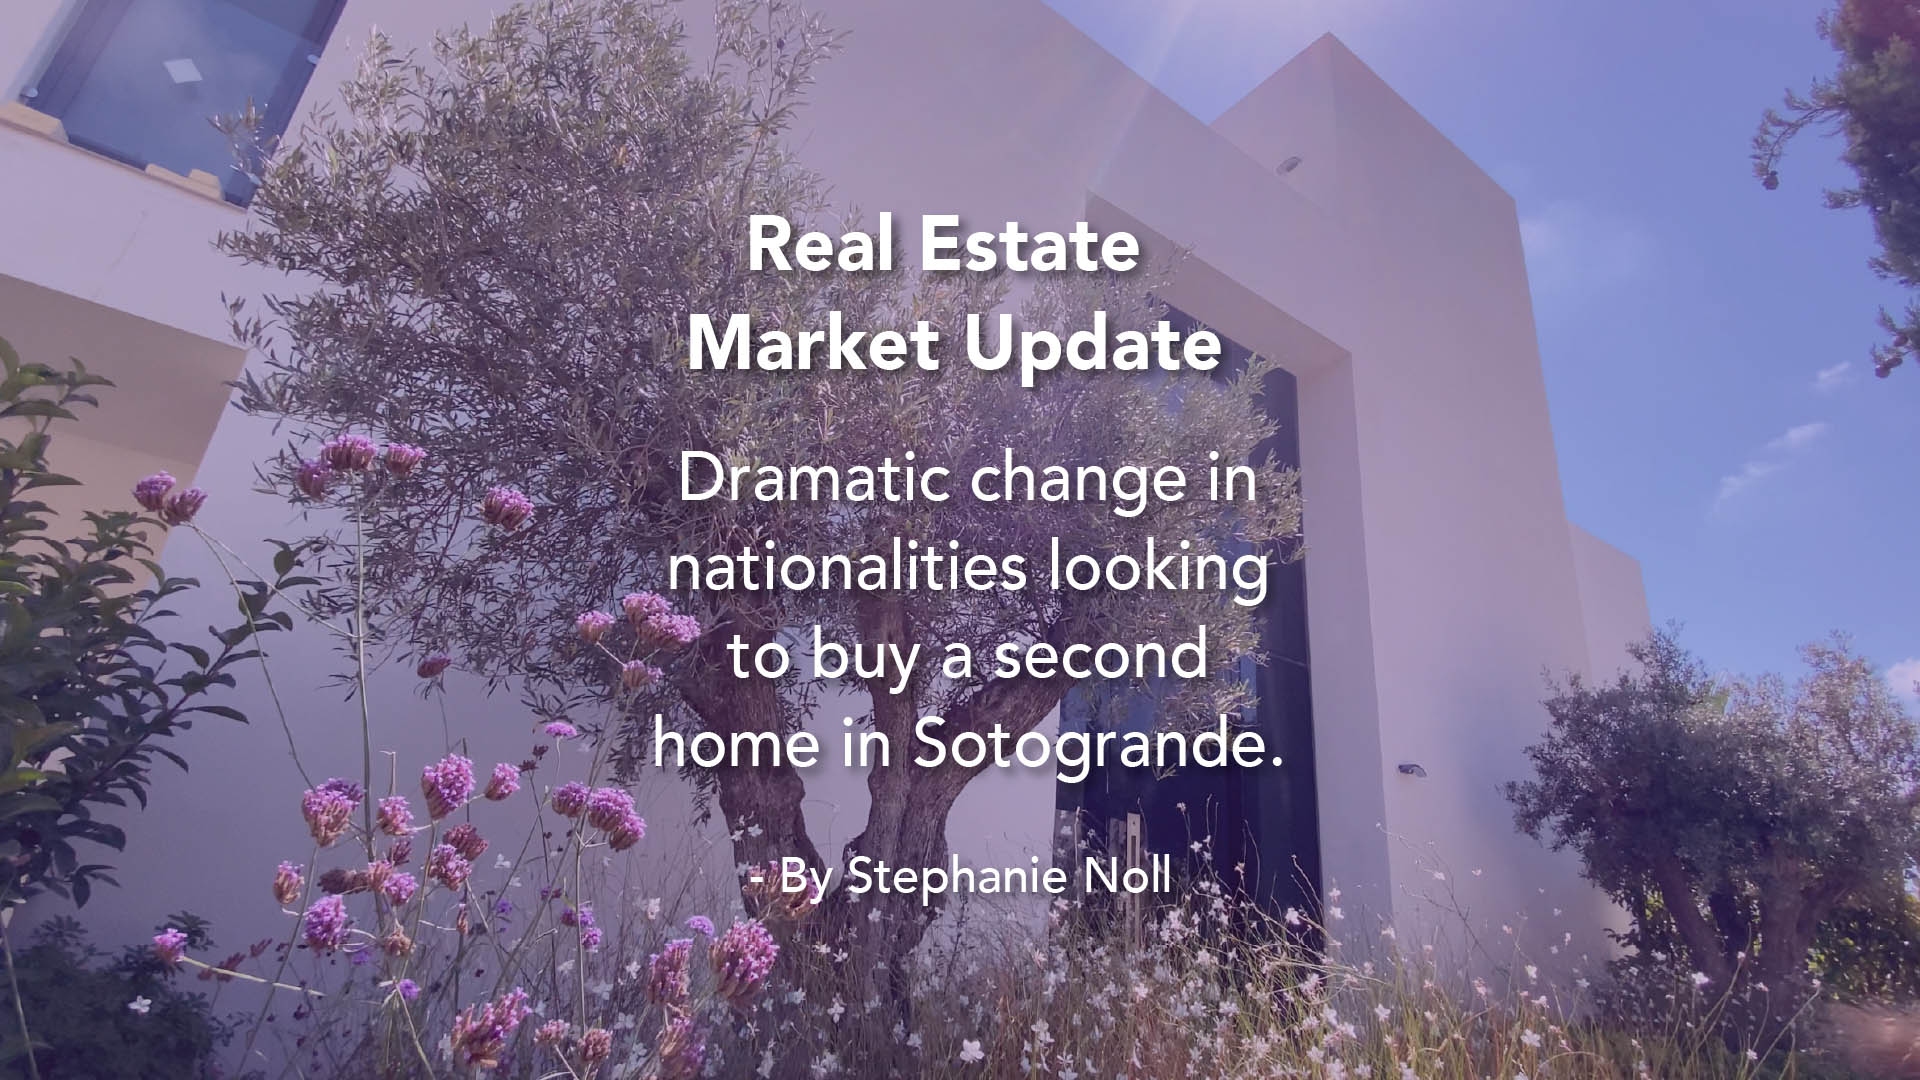 dramatic change in nationalities looking to buy a second home in Sotogrande - by Stephanie Noll -1